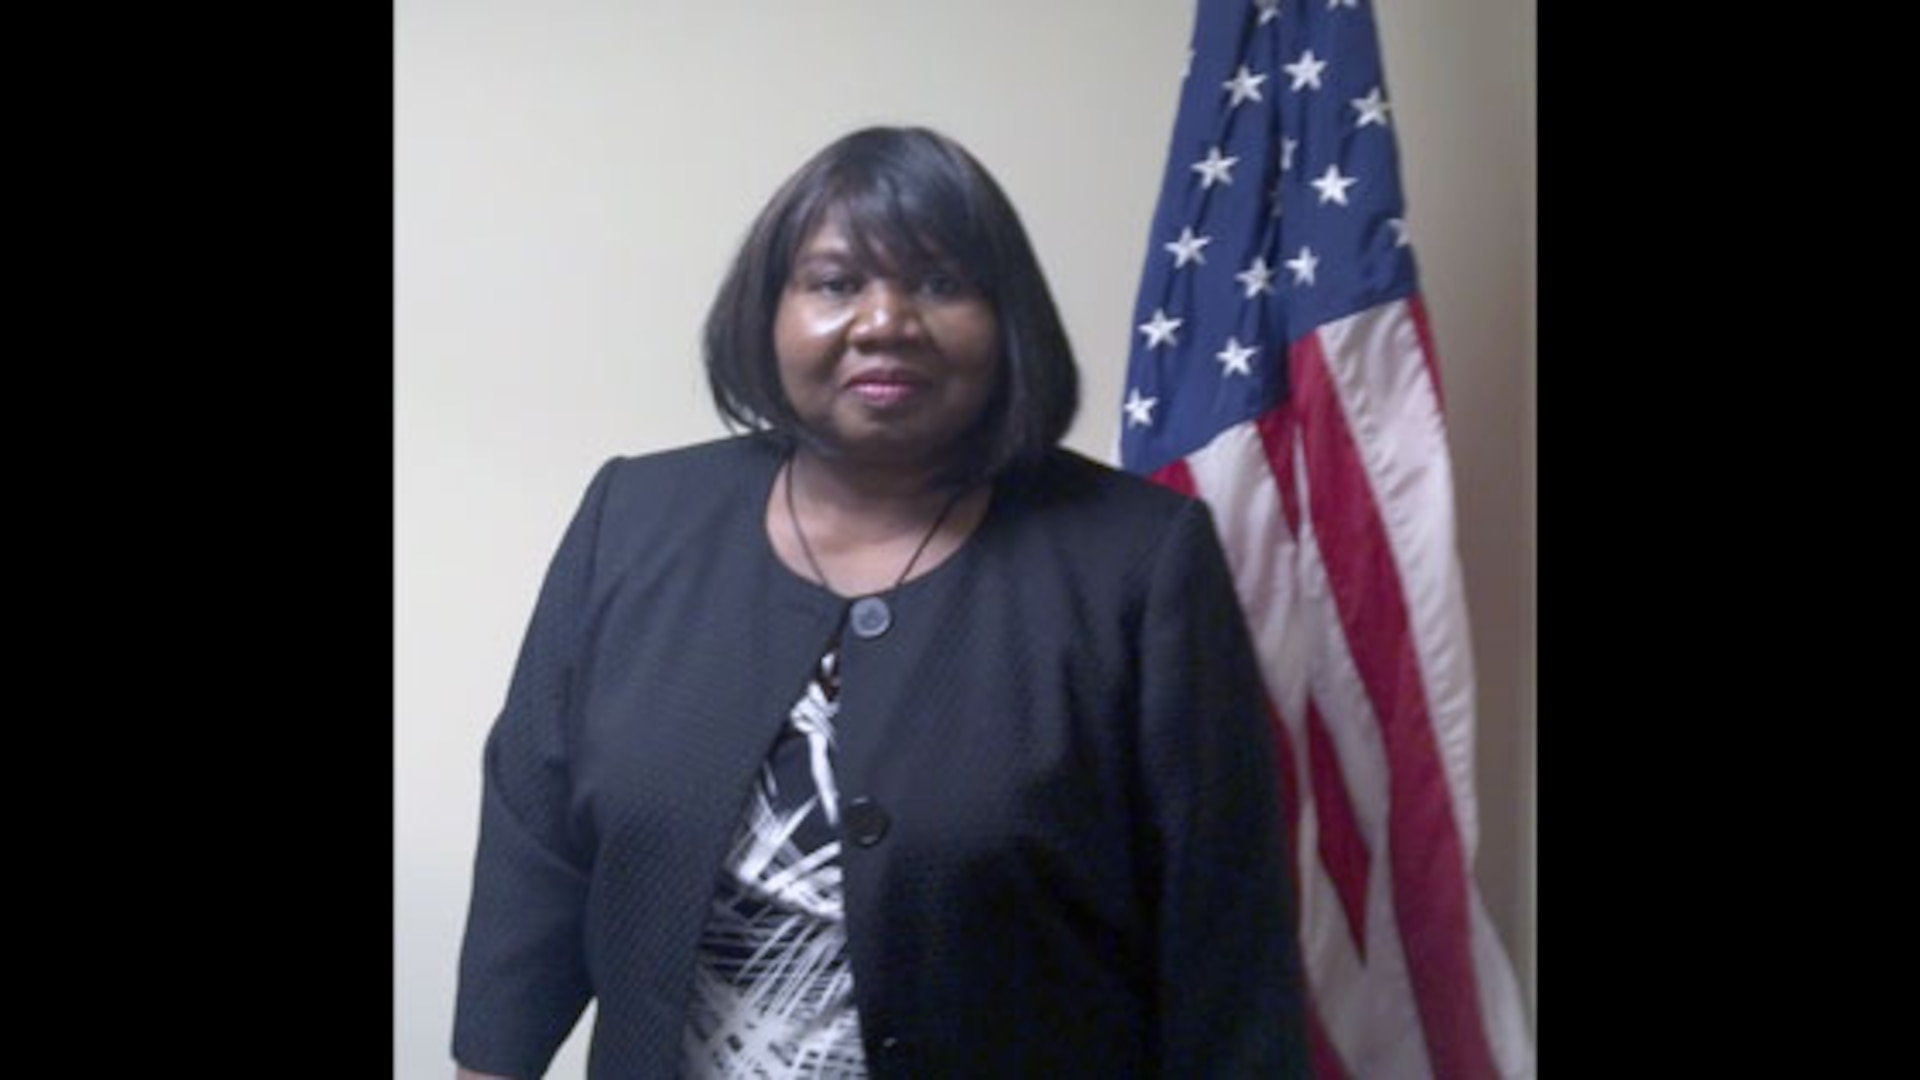 Vivian Hill, who is the deputy director at Defense Contract Management Agency Atlanta, is a mentor to employees at the agency. She has been with the agency and its predecessors for 35 years, and said she benefited previously from mentoring. (DCMA photo by Patrick Tremblay)